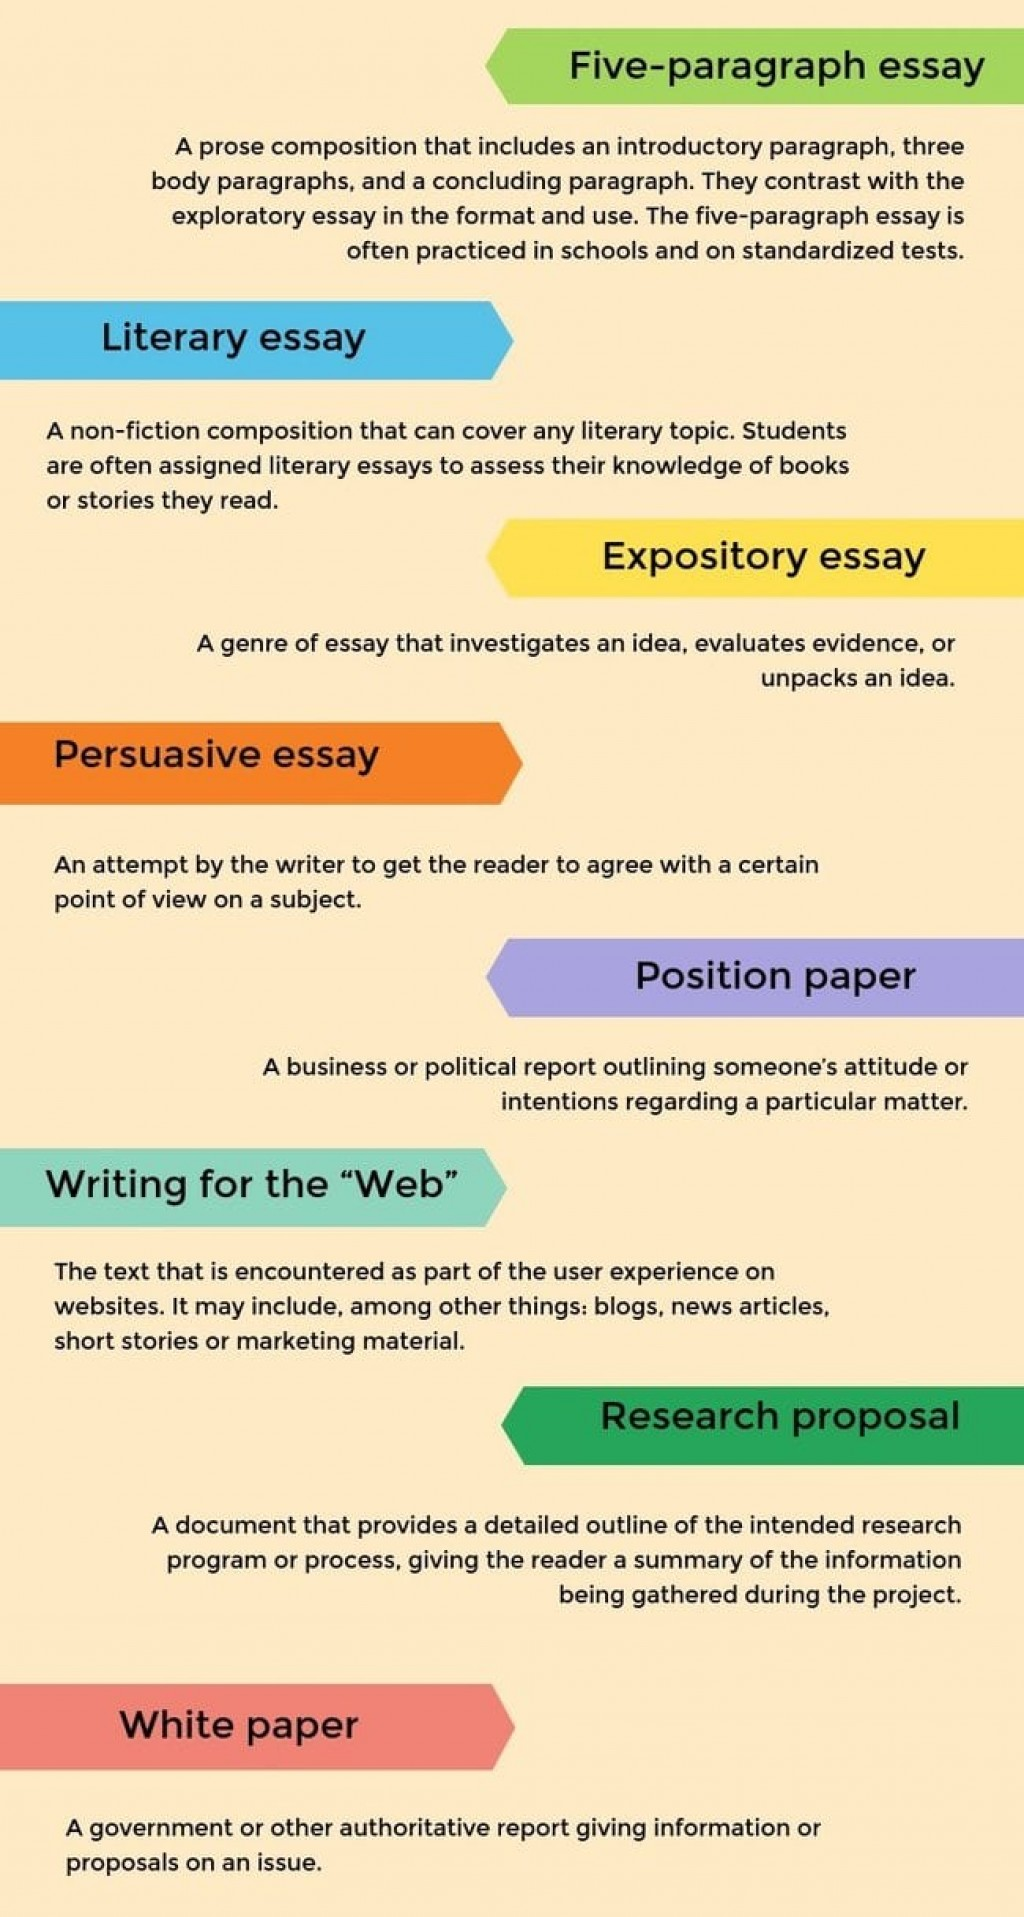 011 Oz Types Of Essays Essay Example Paragraph Best 5 Topics For High School Middle Large